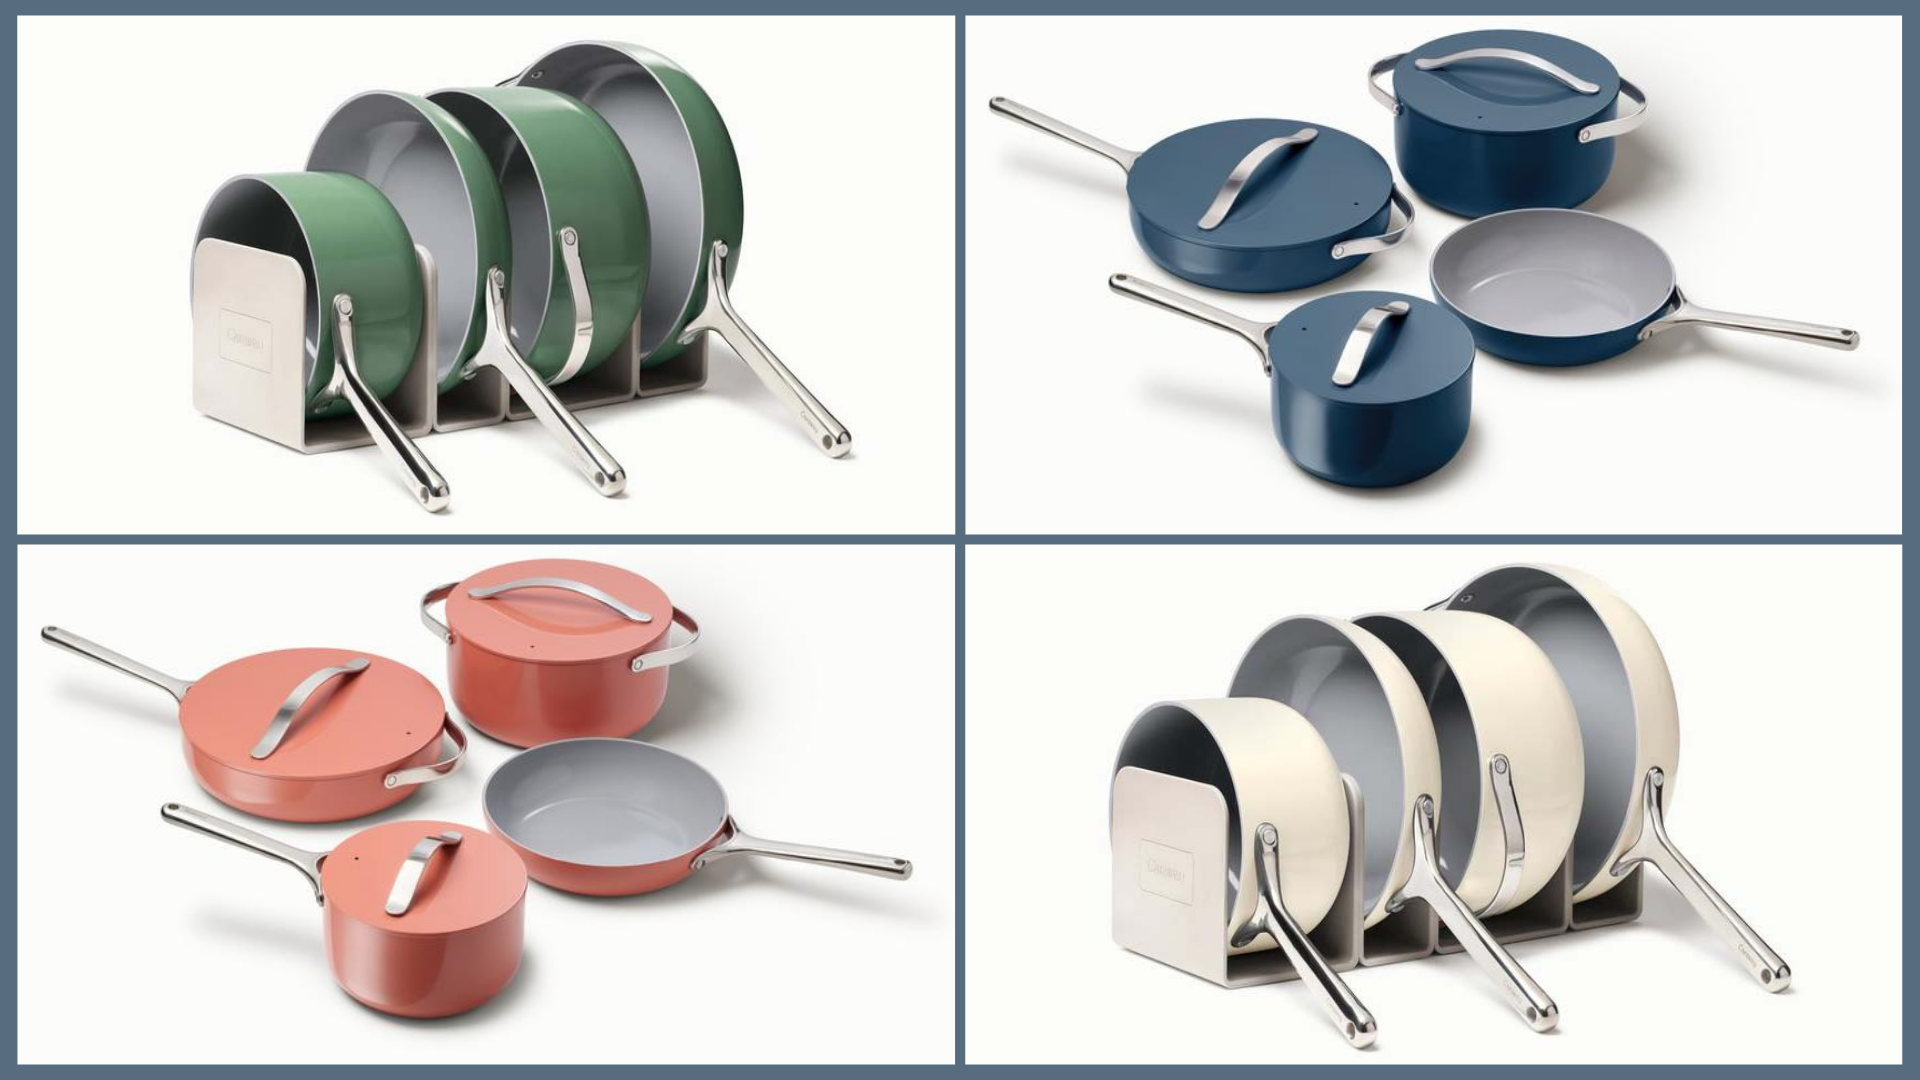 The Caraway Cookware Set That's All Over Instagram is On Sale Right Now